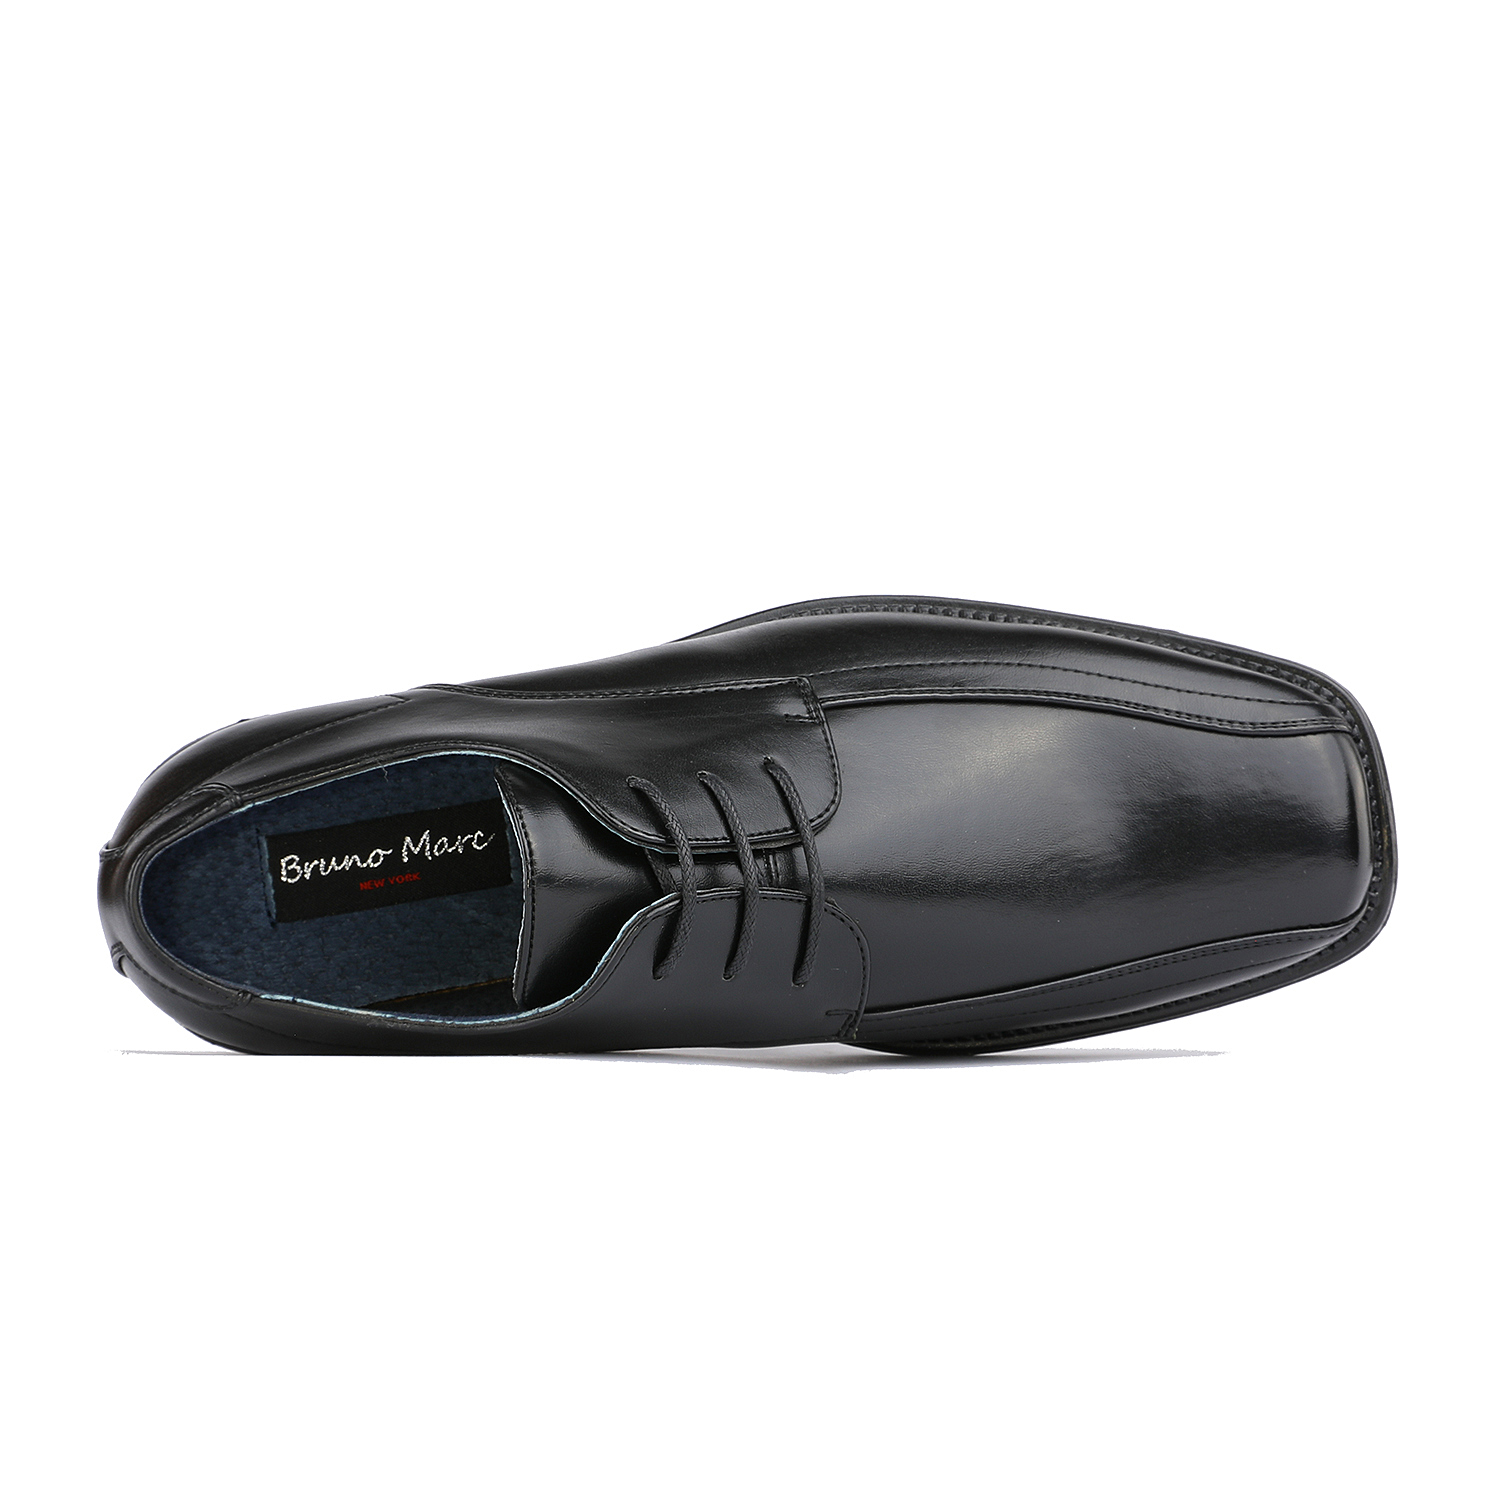 BRUNO-MARC-Men-STATE-Formal-Square-Toe-Leather-Lined-Slip-On-Dress-Loafers-Shoes thumbnail 22